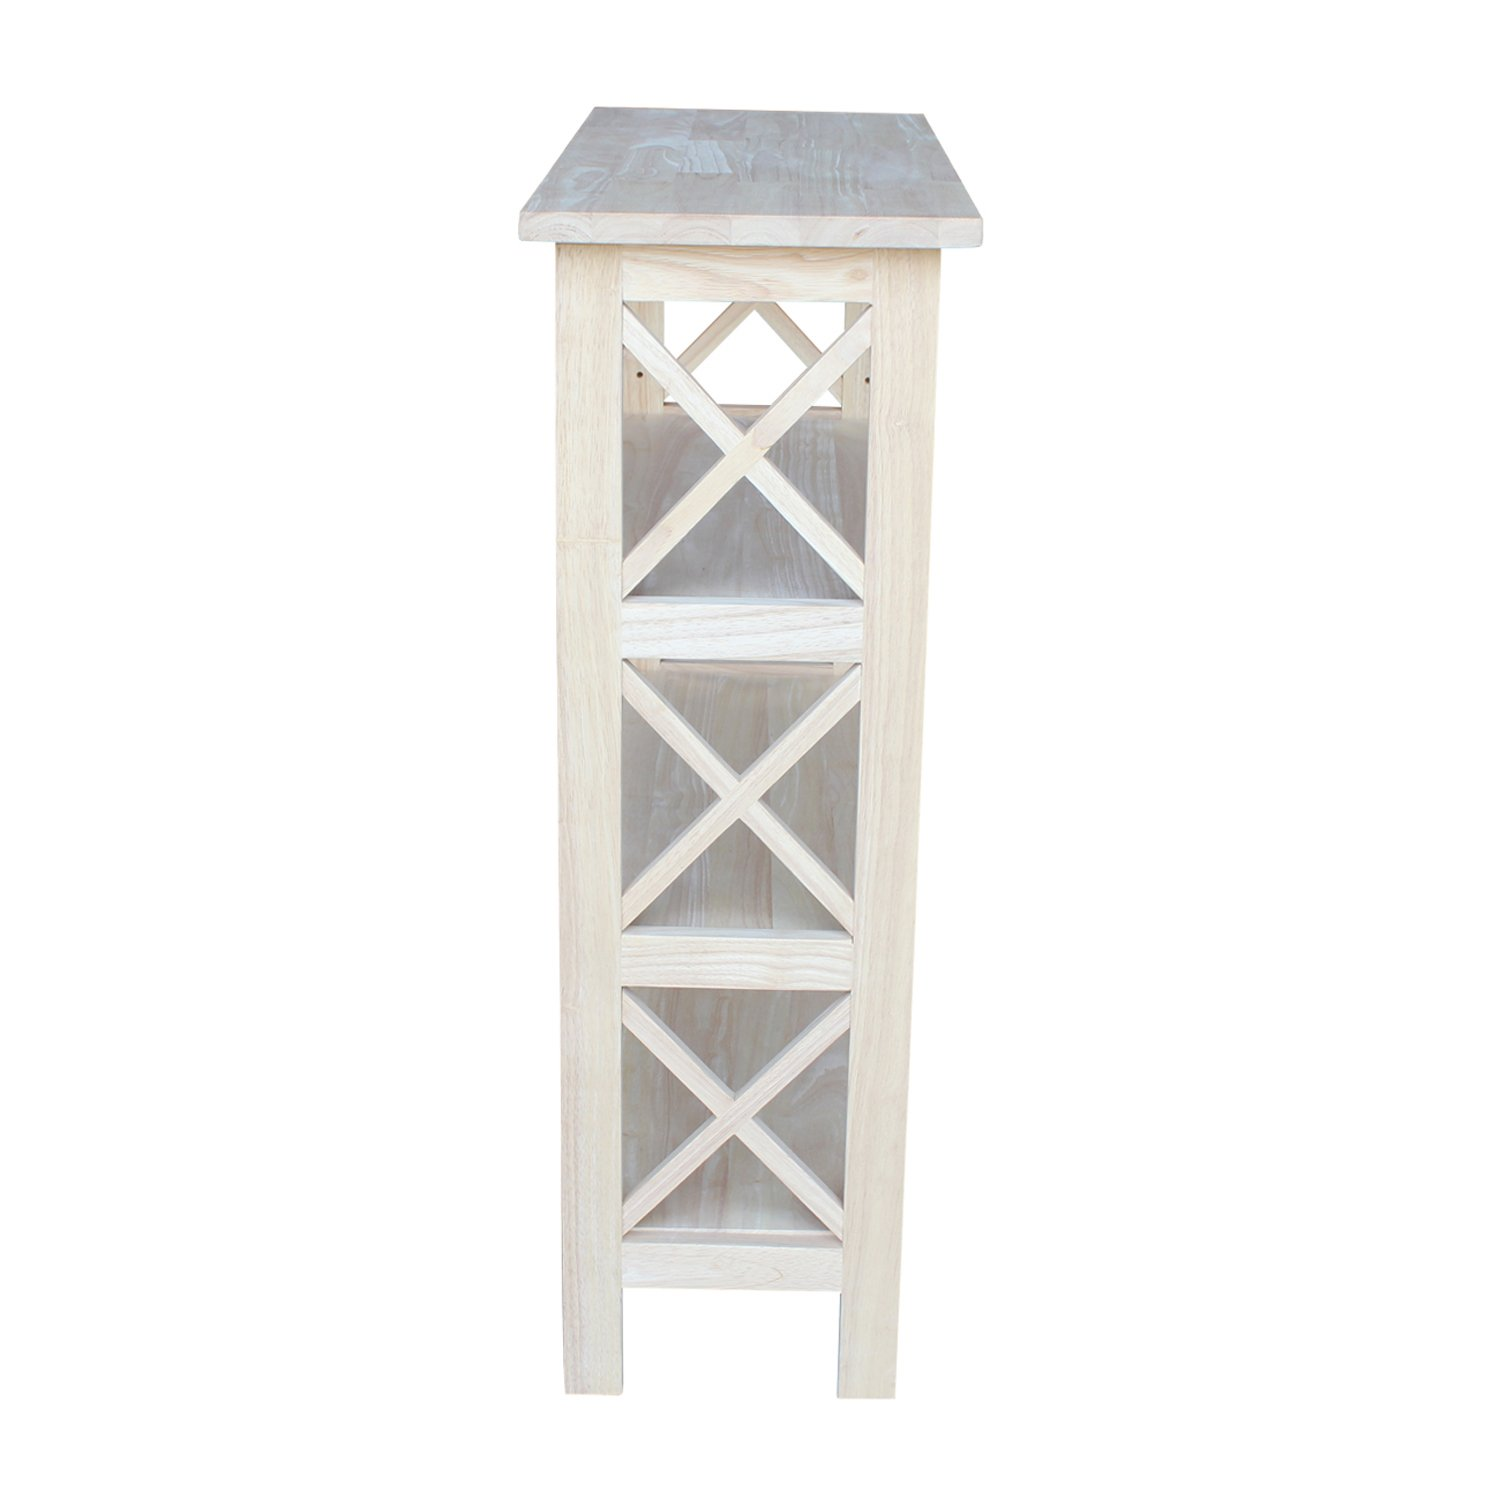 International Concepts SH-3630X 3-Tier X-Sided Bookcase, Unfinished